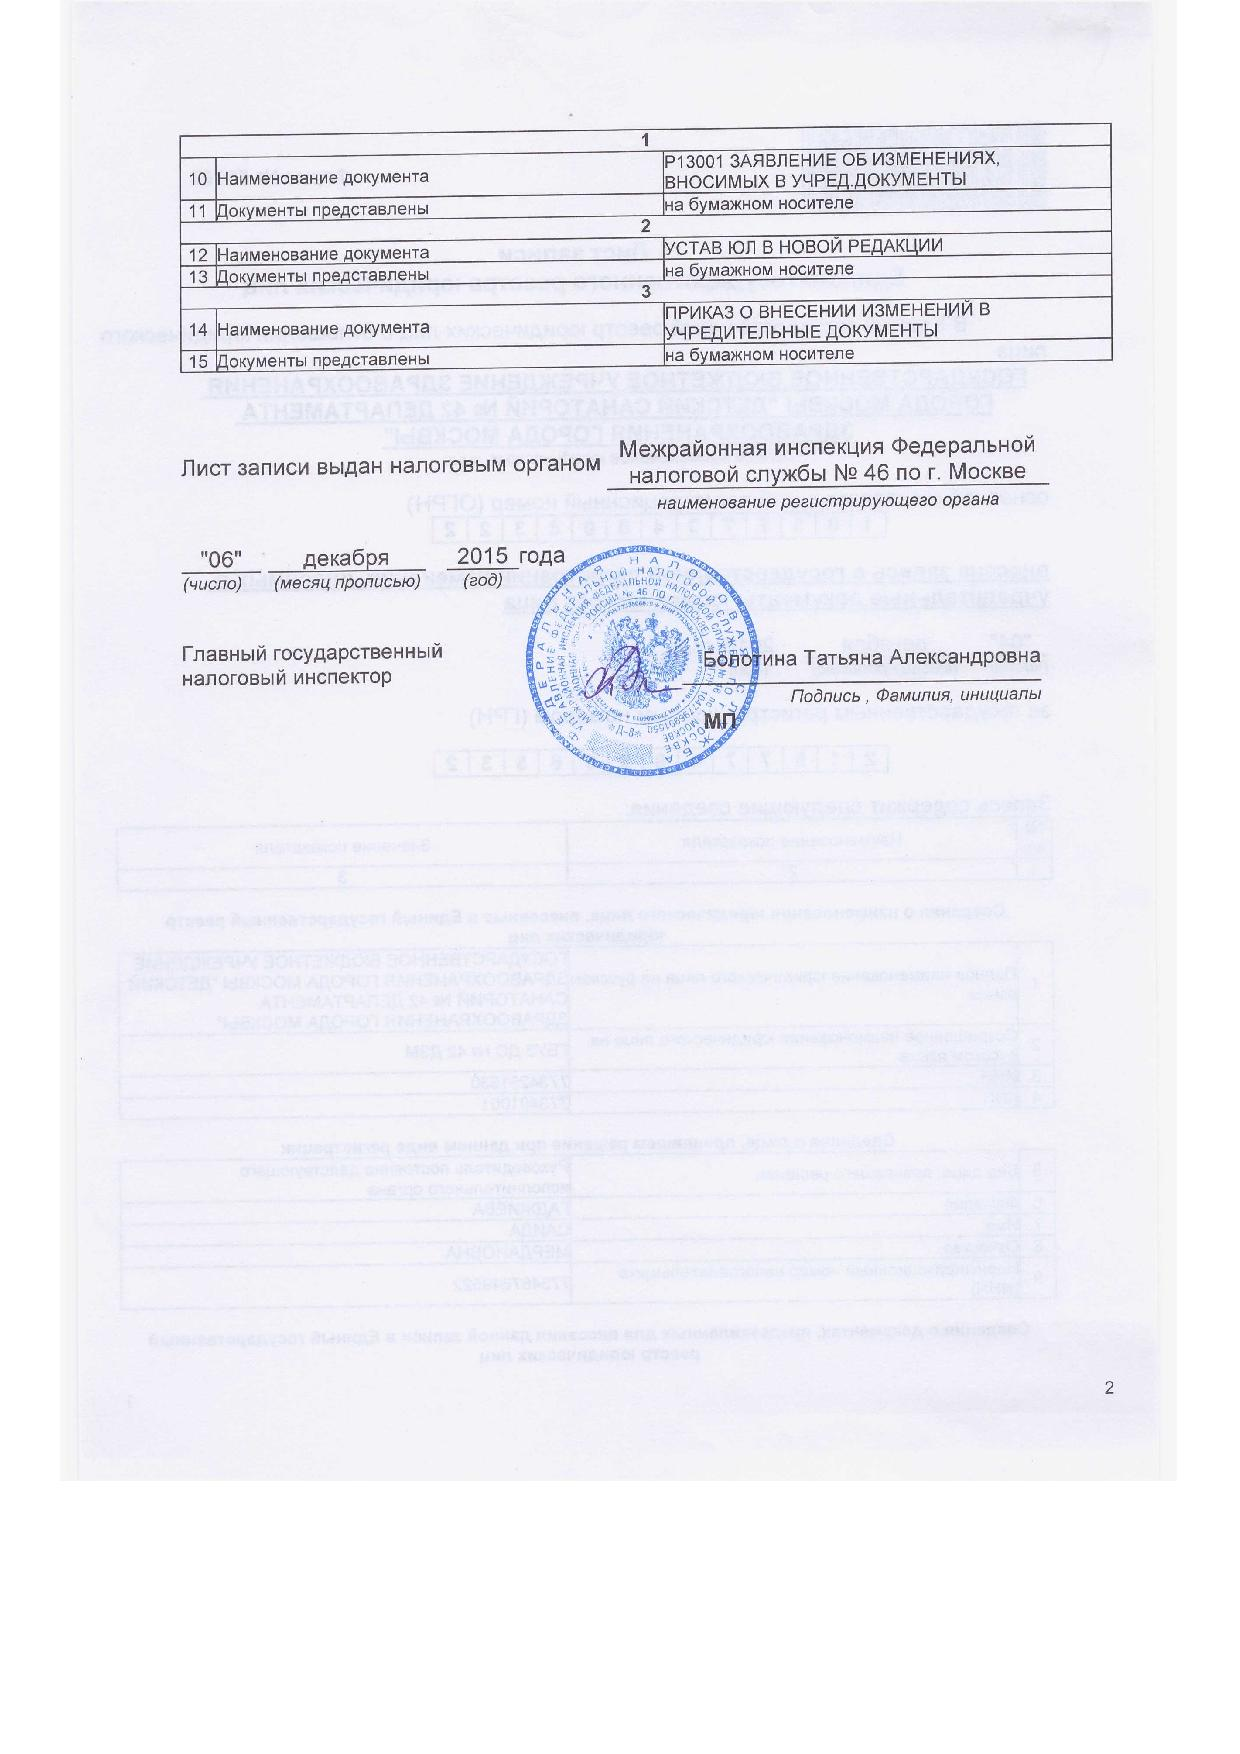 Document-page-002 7